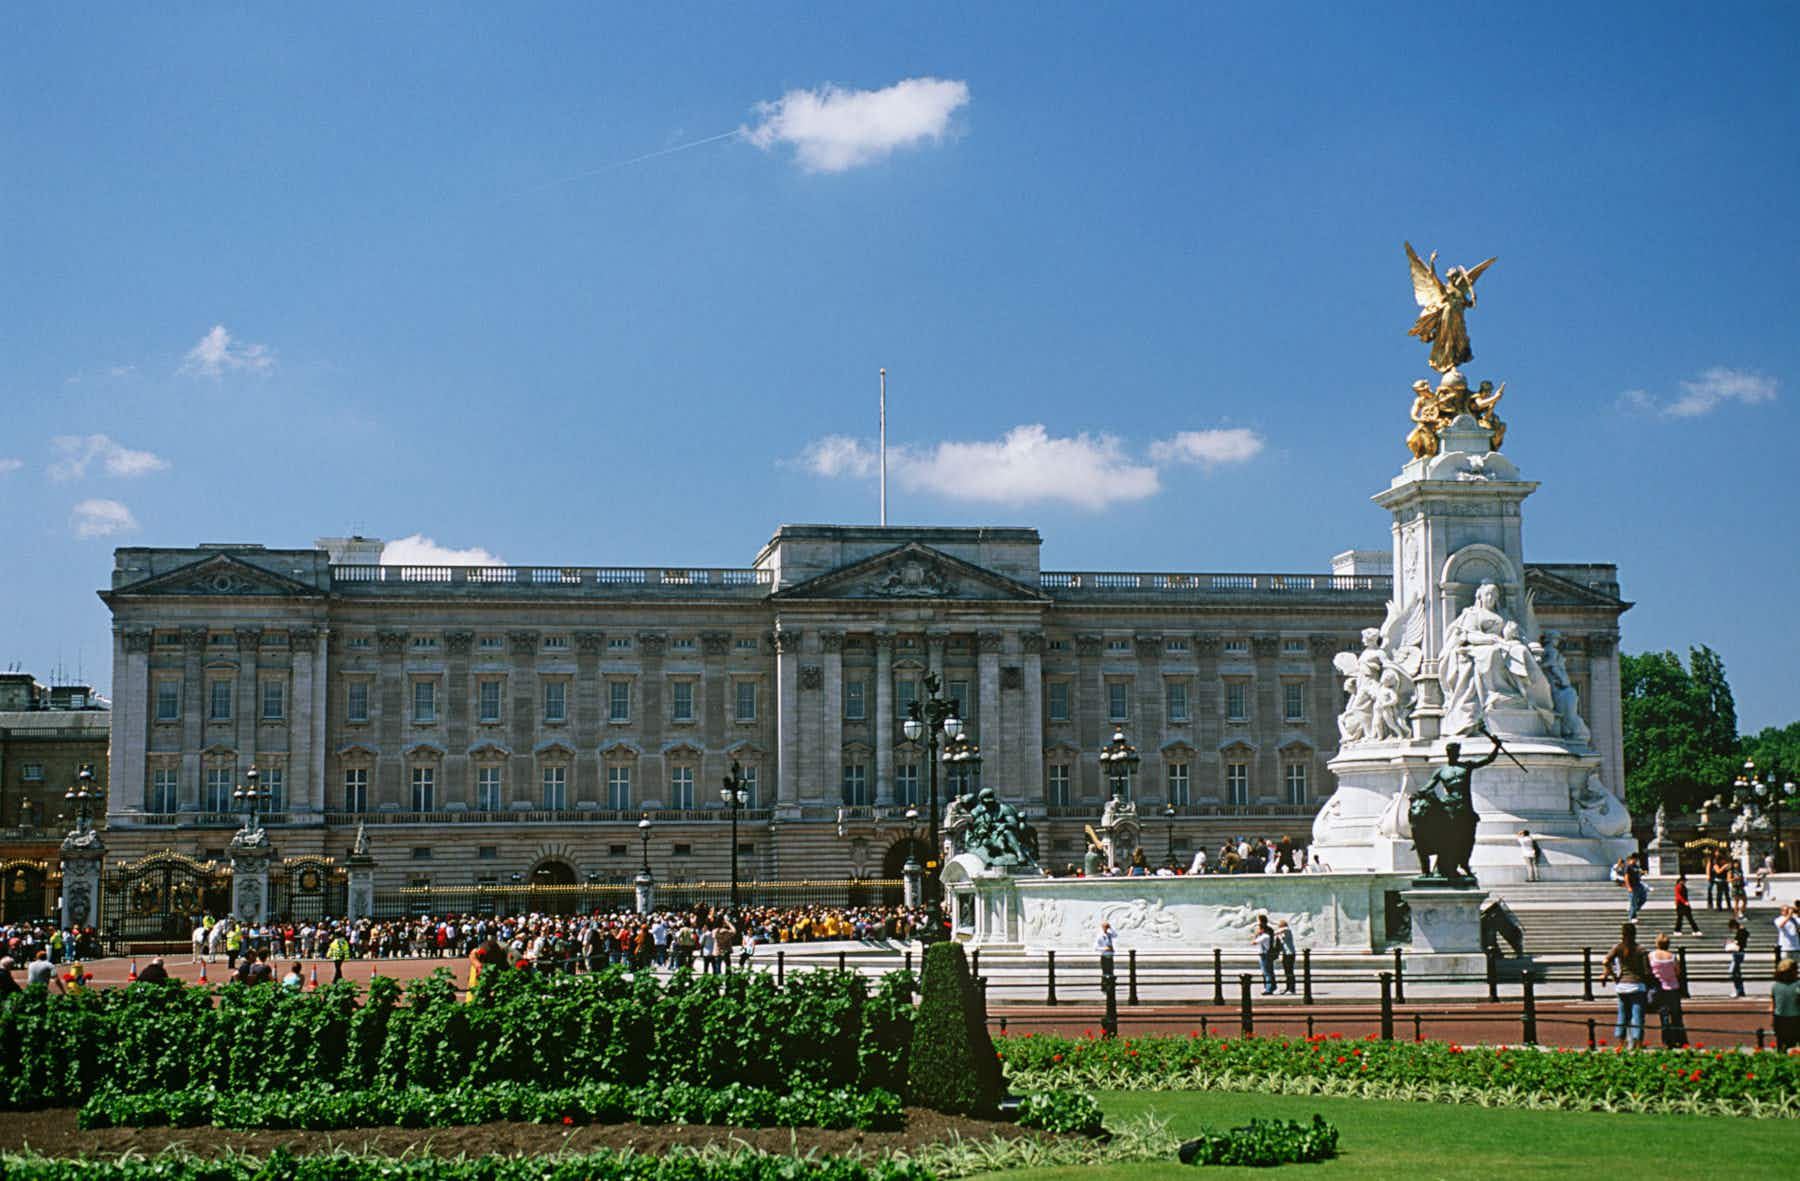 Buckingham Palace reopens to visitors now that the Queen is away for the summer